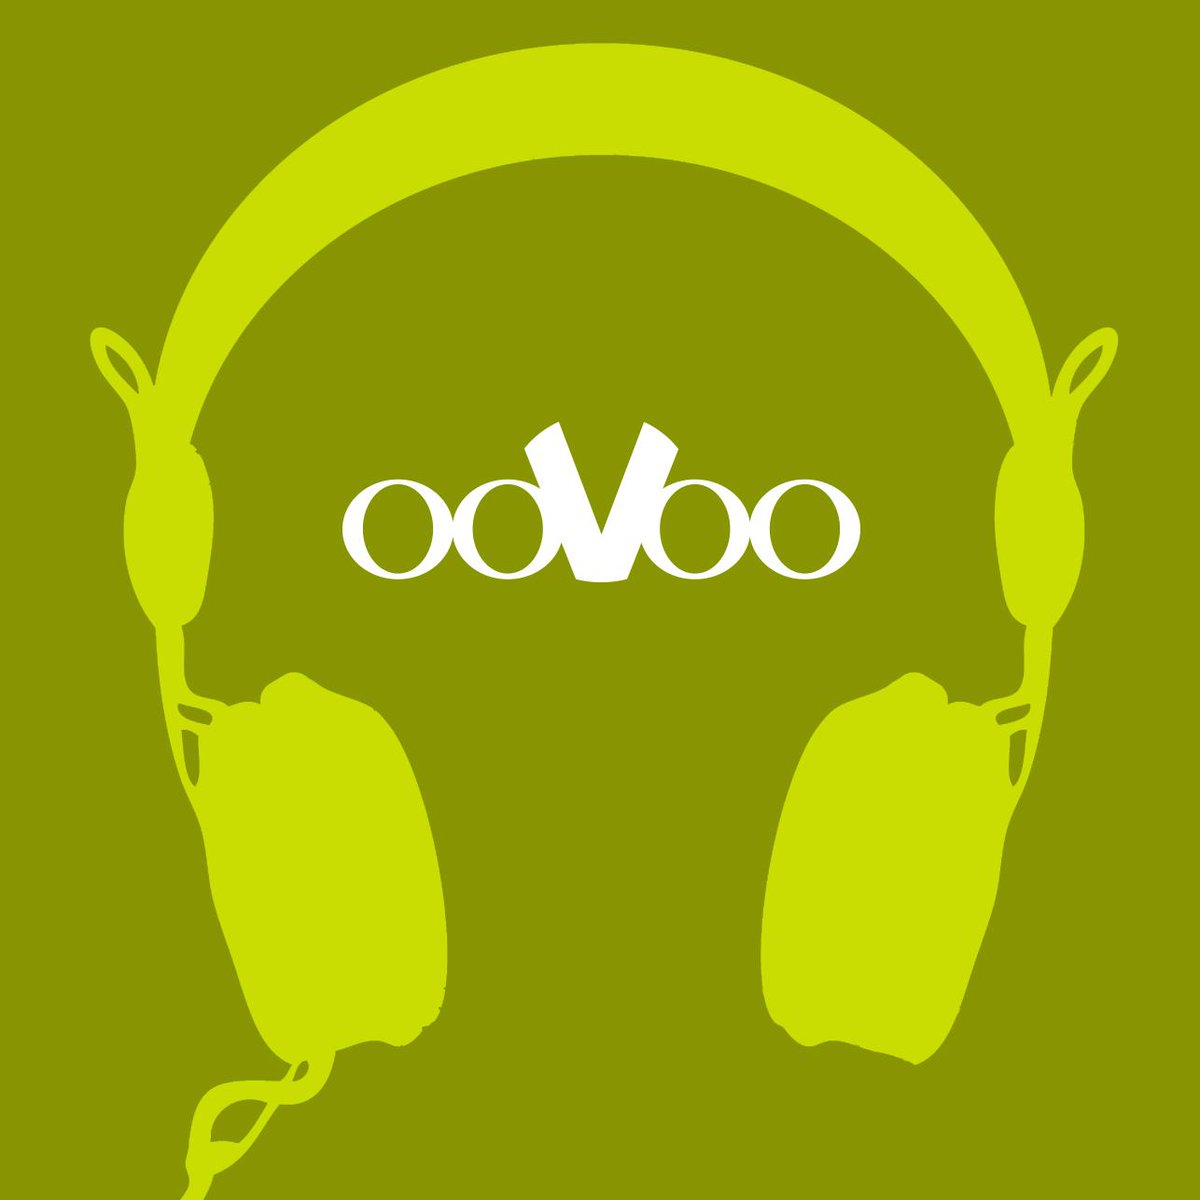 Get @ooVoo now: http://t.co/v9h1k51TbP & RT to win @beatsbydre! Must have the app to win! Ends 6/12. http://t.co/KK7c8y0zxE